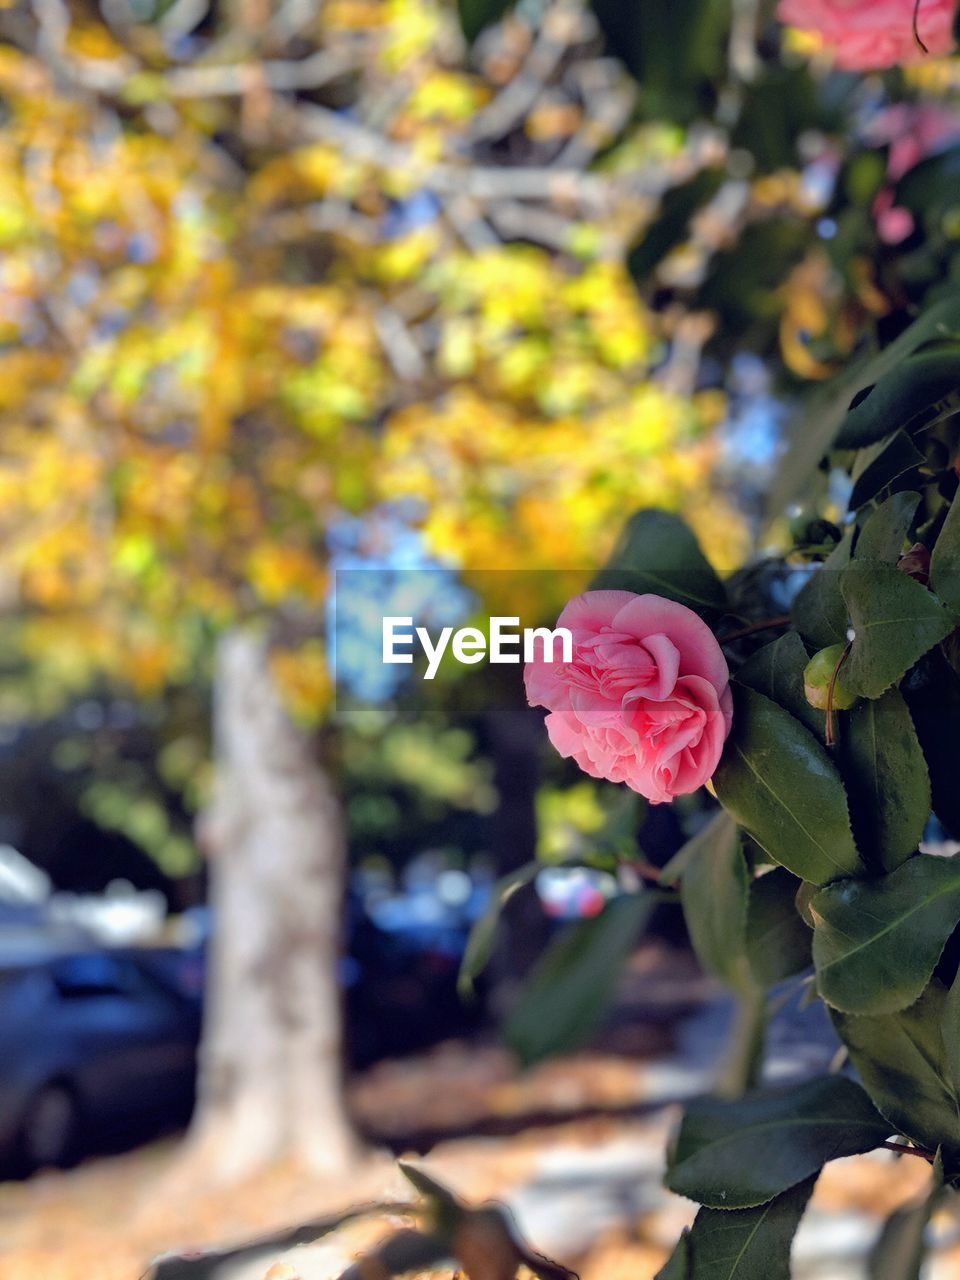 plant, flower, beauty in nature, flowering plant, growth, nature, freshness, close-up, leaf, plant part, petal, focus on foreground, vulnerability, day, fragility, rose, rose - flower, no people, outdoors, tree, flower head